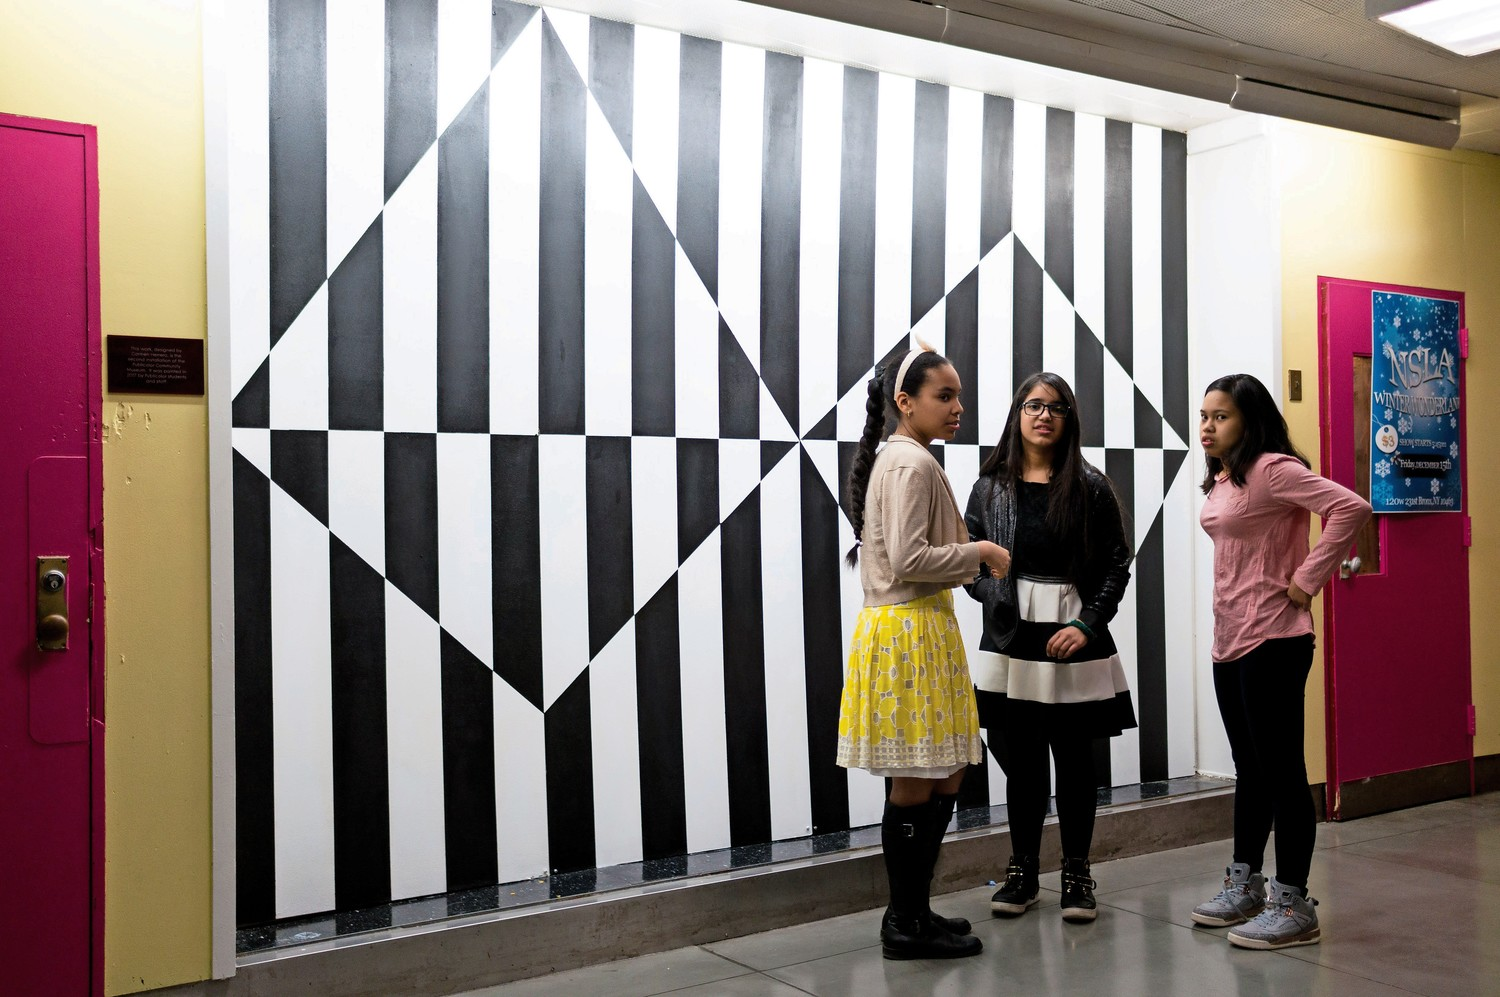 M.S. 244 students Mariam Alberto, Sherlyn Munez and Sily Netapongot talk in front of a reproduction of a painting by Carmen Herrera. They worked with other classmates and the organization Publicolor to bring the painting to life.